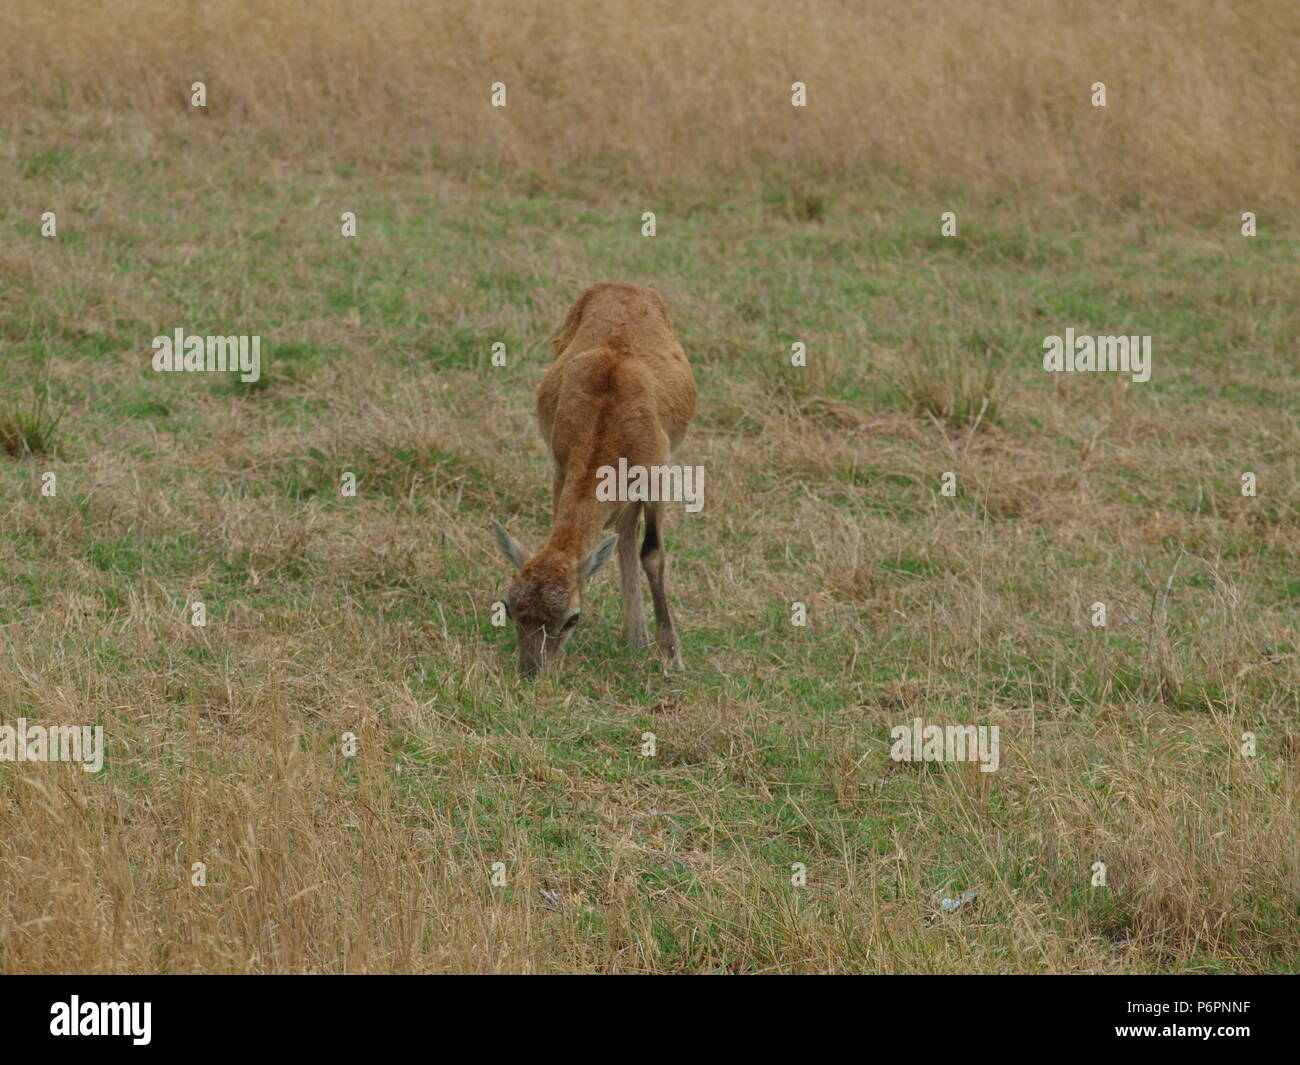 12 9 1960 Stock Photos Images Alamy Pulpen Safari 1706 Red Shoulder Hawk And Rocky Mountain Long Horn Sheep Image